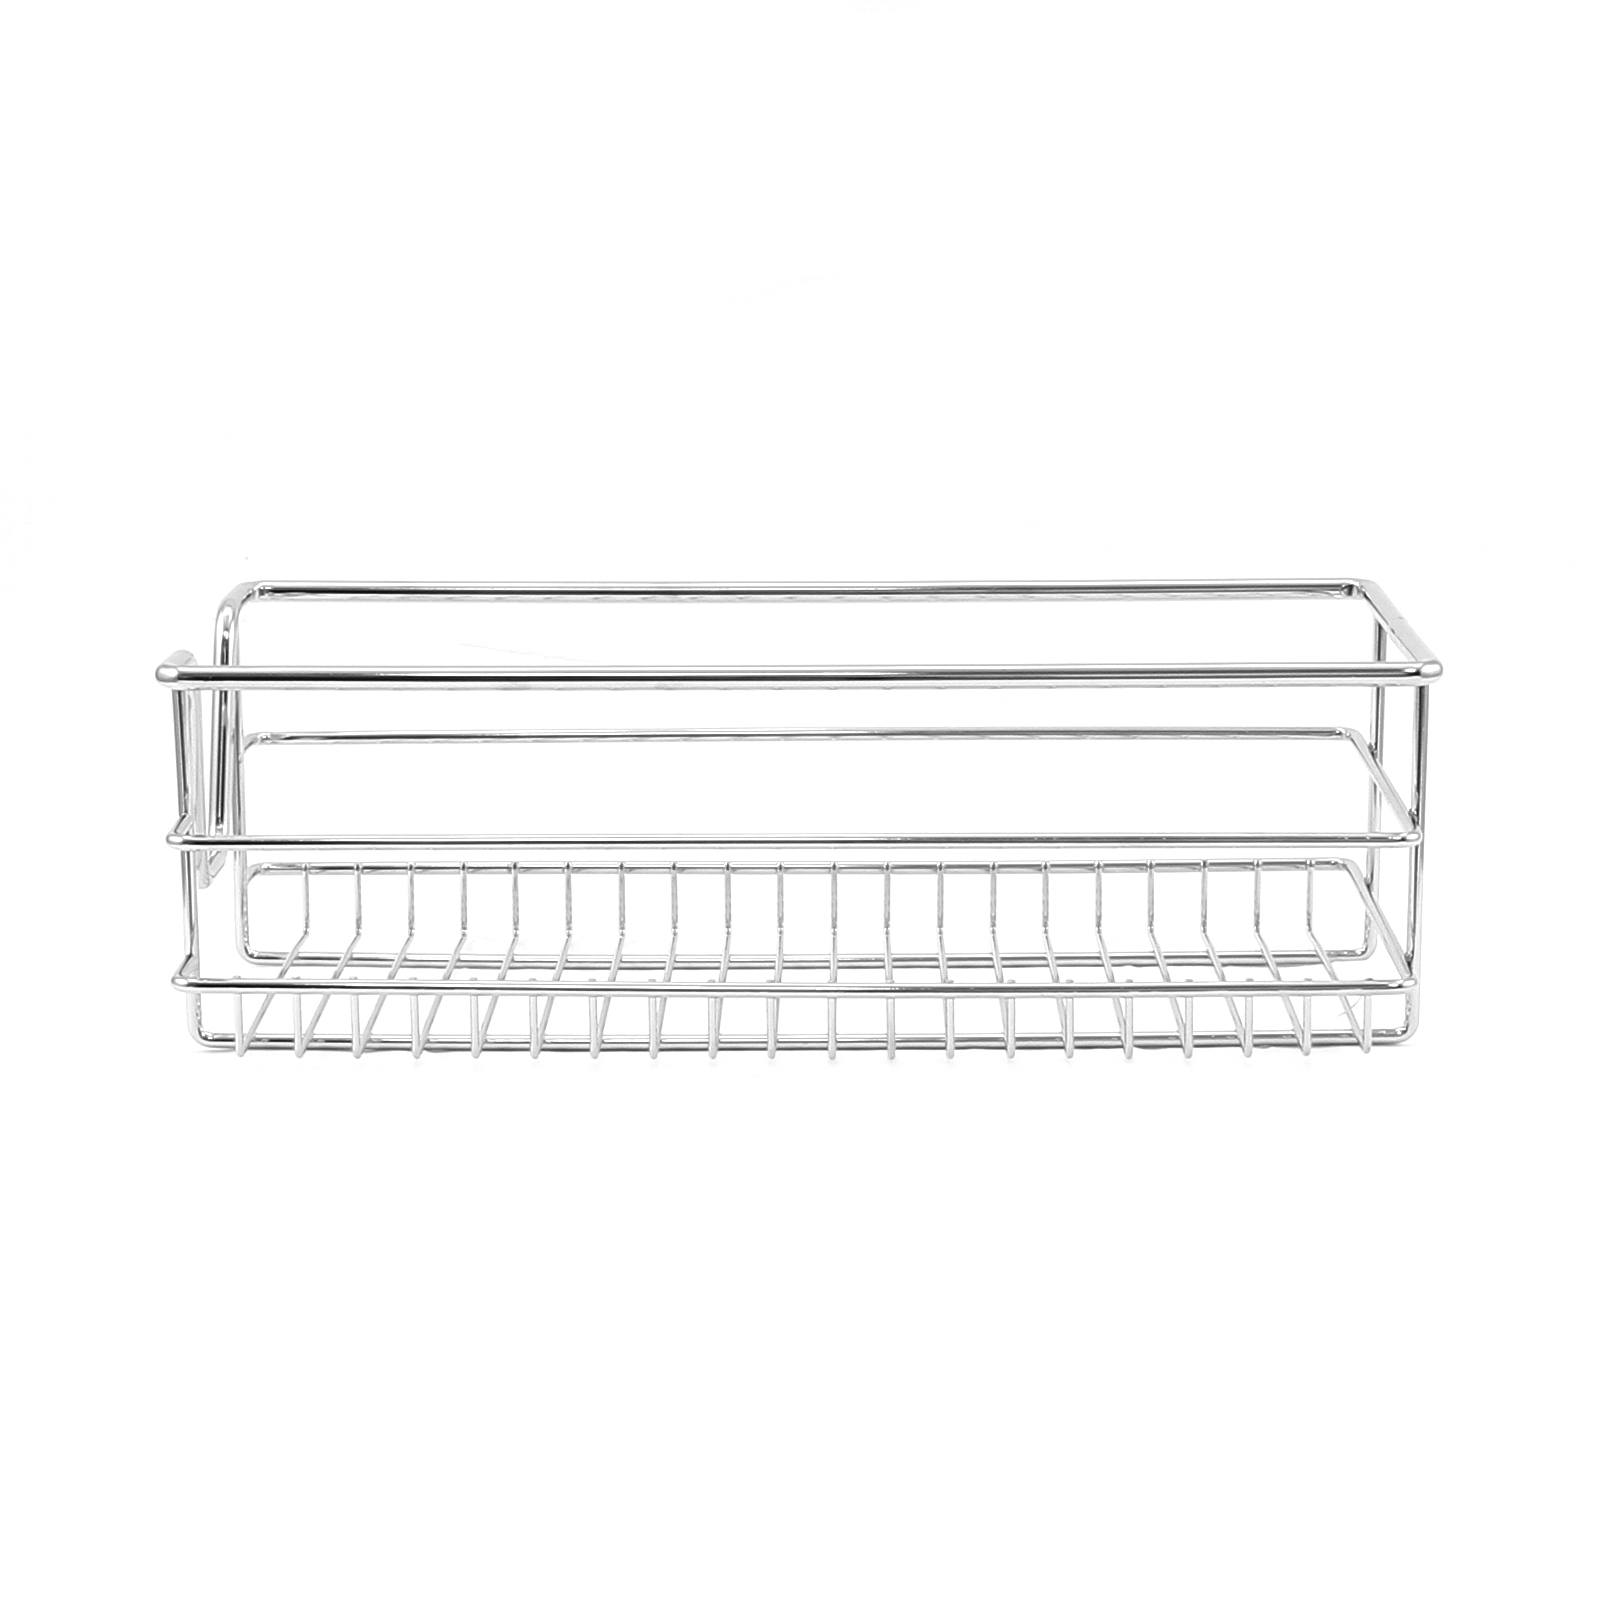 2 kitchen wire baskets pull out storage drawer slide out larder cupboard 30cm ebay. Black Bedroom Furniture Sets. Home Design Ideas